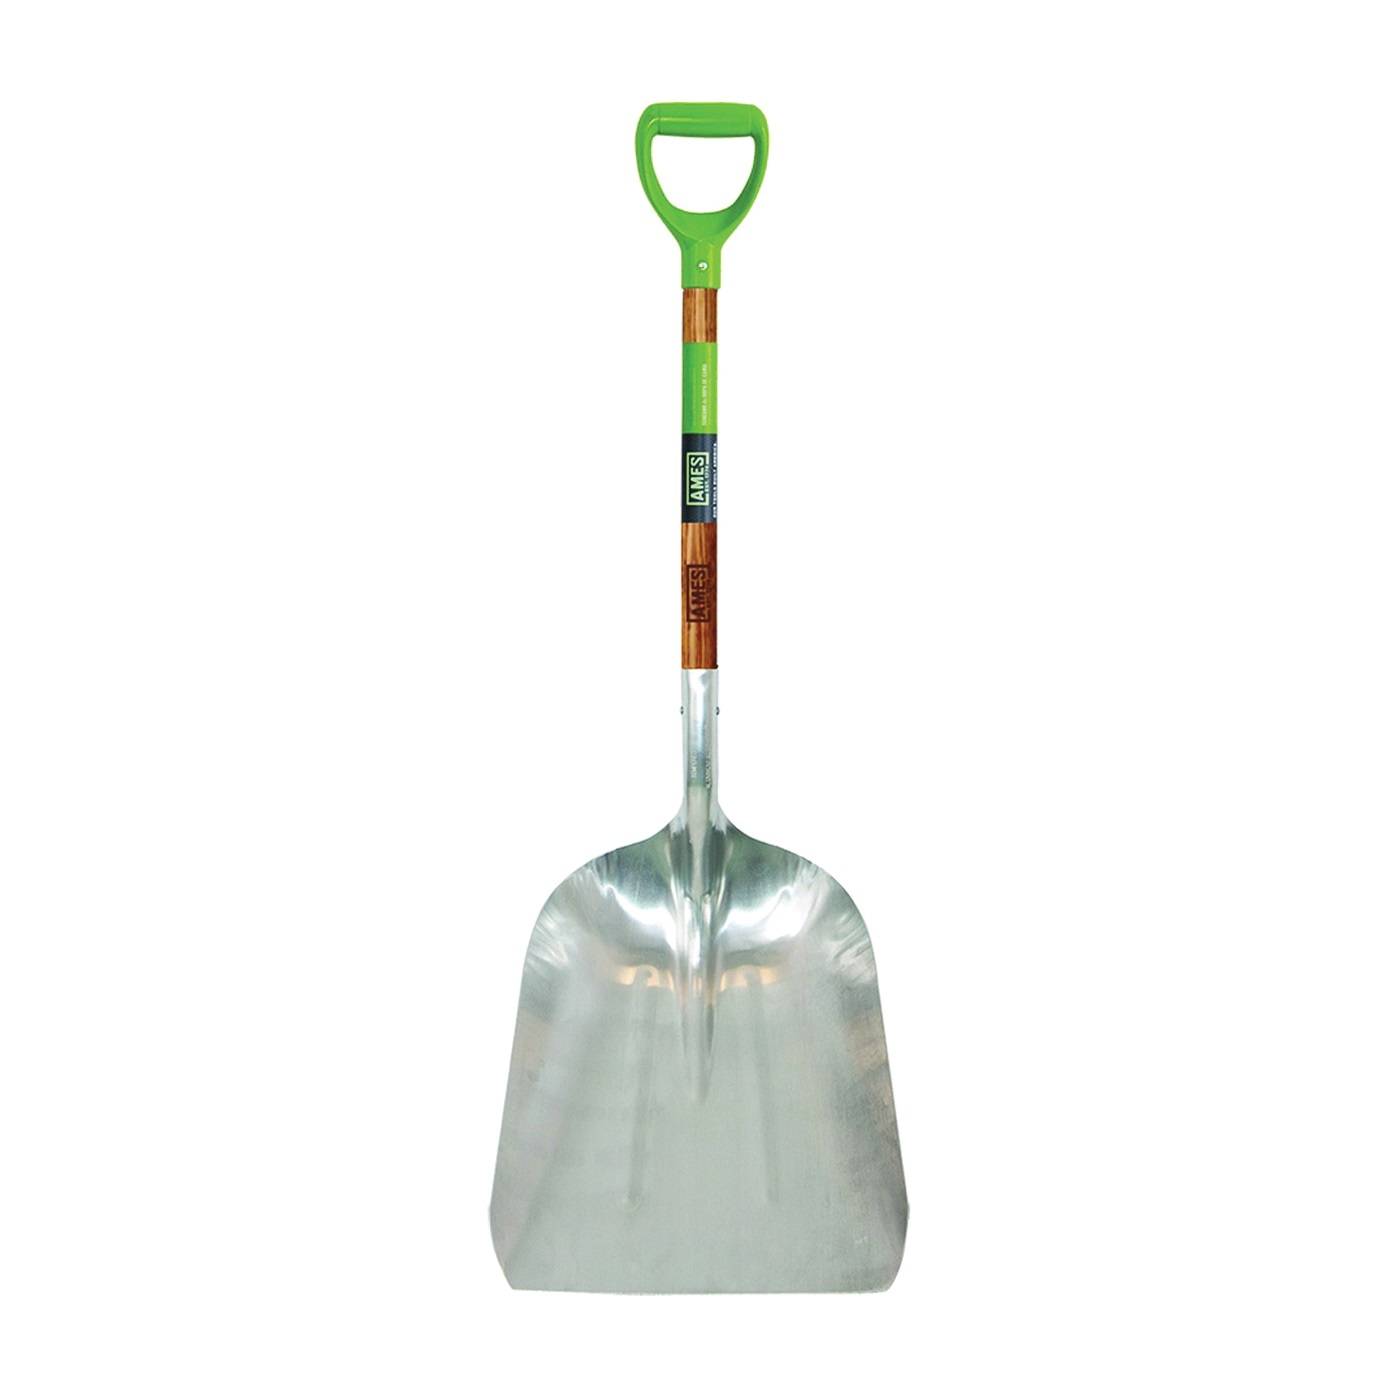 Picture of AMES 2672400 Scoop Shovel, 15-1/2 in W Blade, 11-1/2 in L Blade, Aluminum Blade, Northern Hardwood Handle